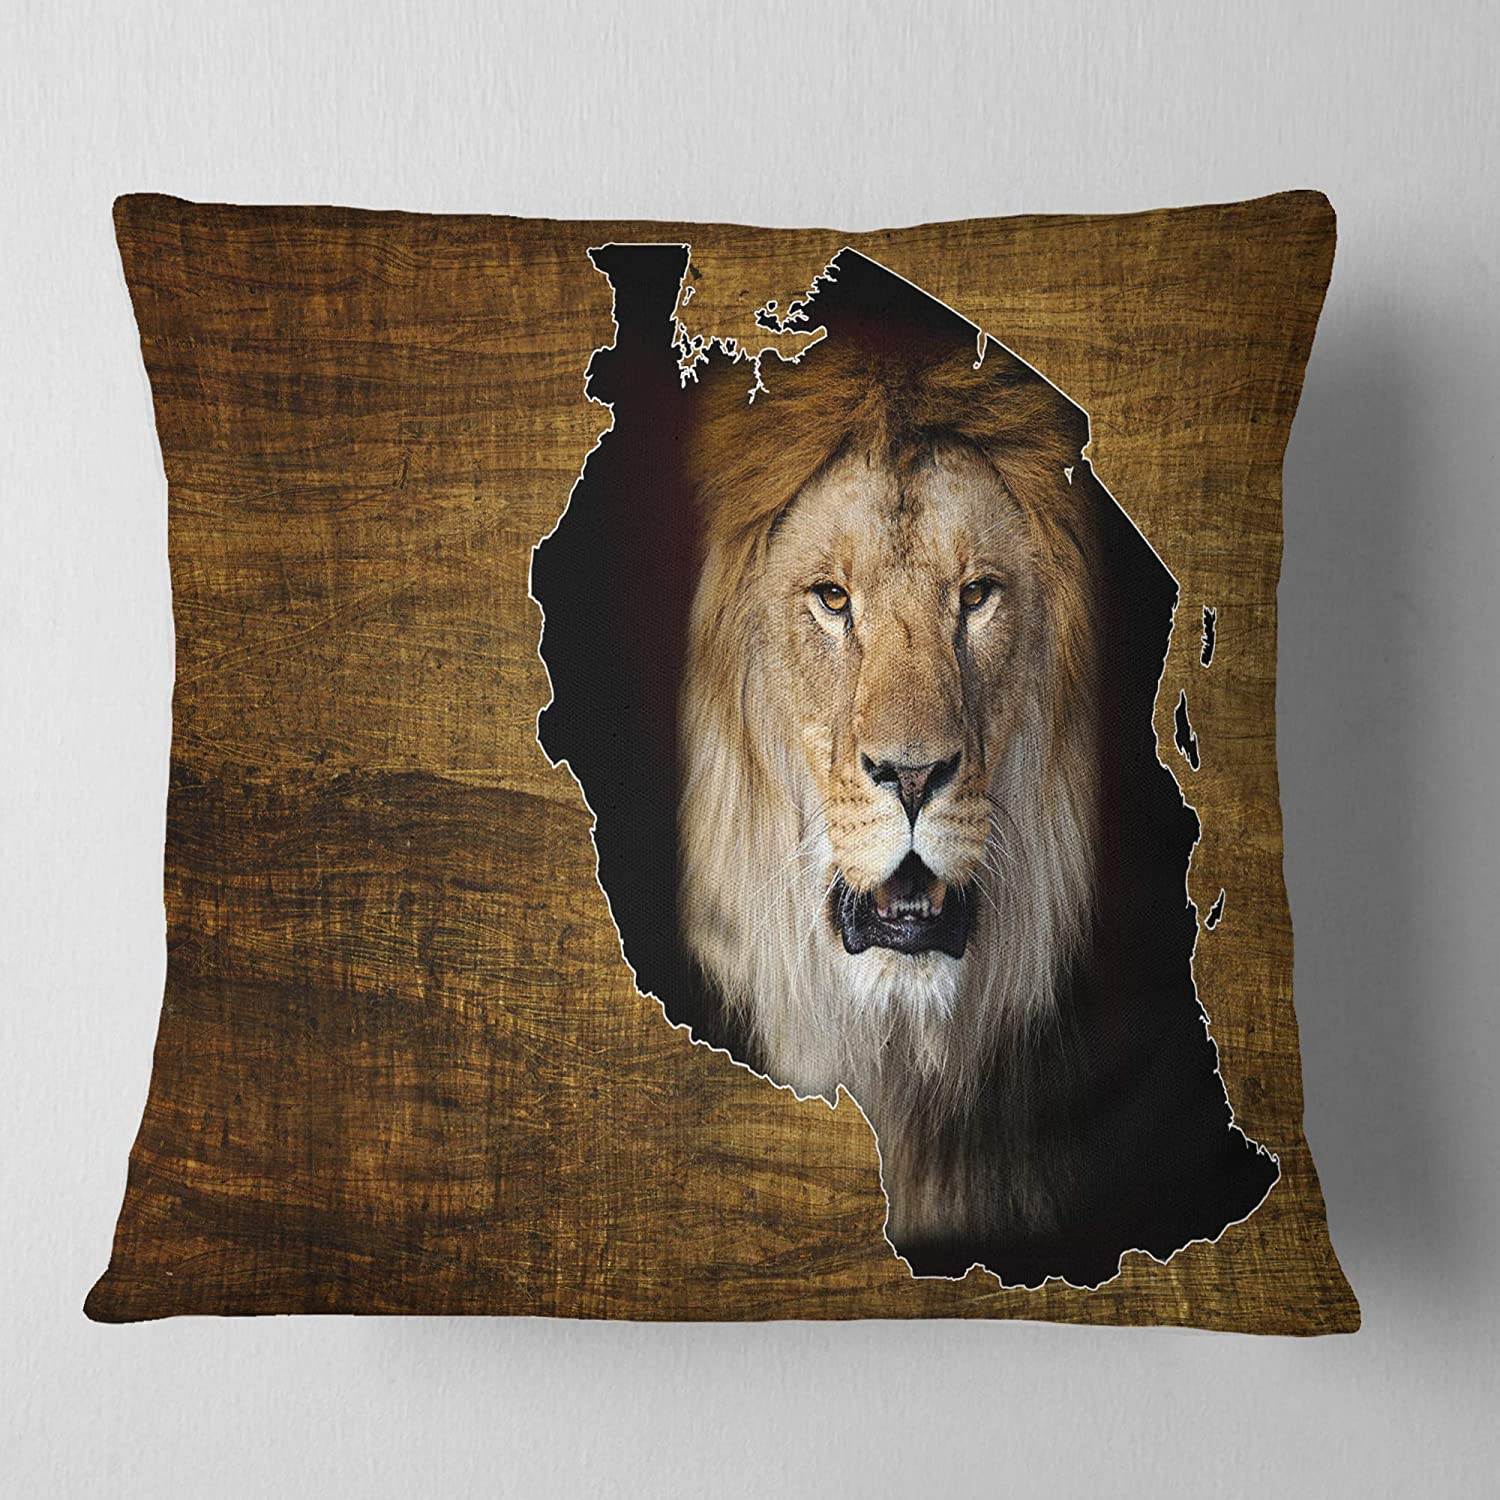 Designart CU12956-26-26 Tanzania Wildlife Map Design' Abstract Cushion Cover for Living Room, Sofa Throw Pillow 26 in. x 26 in. in, Insert Printed On Both Side